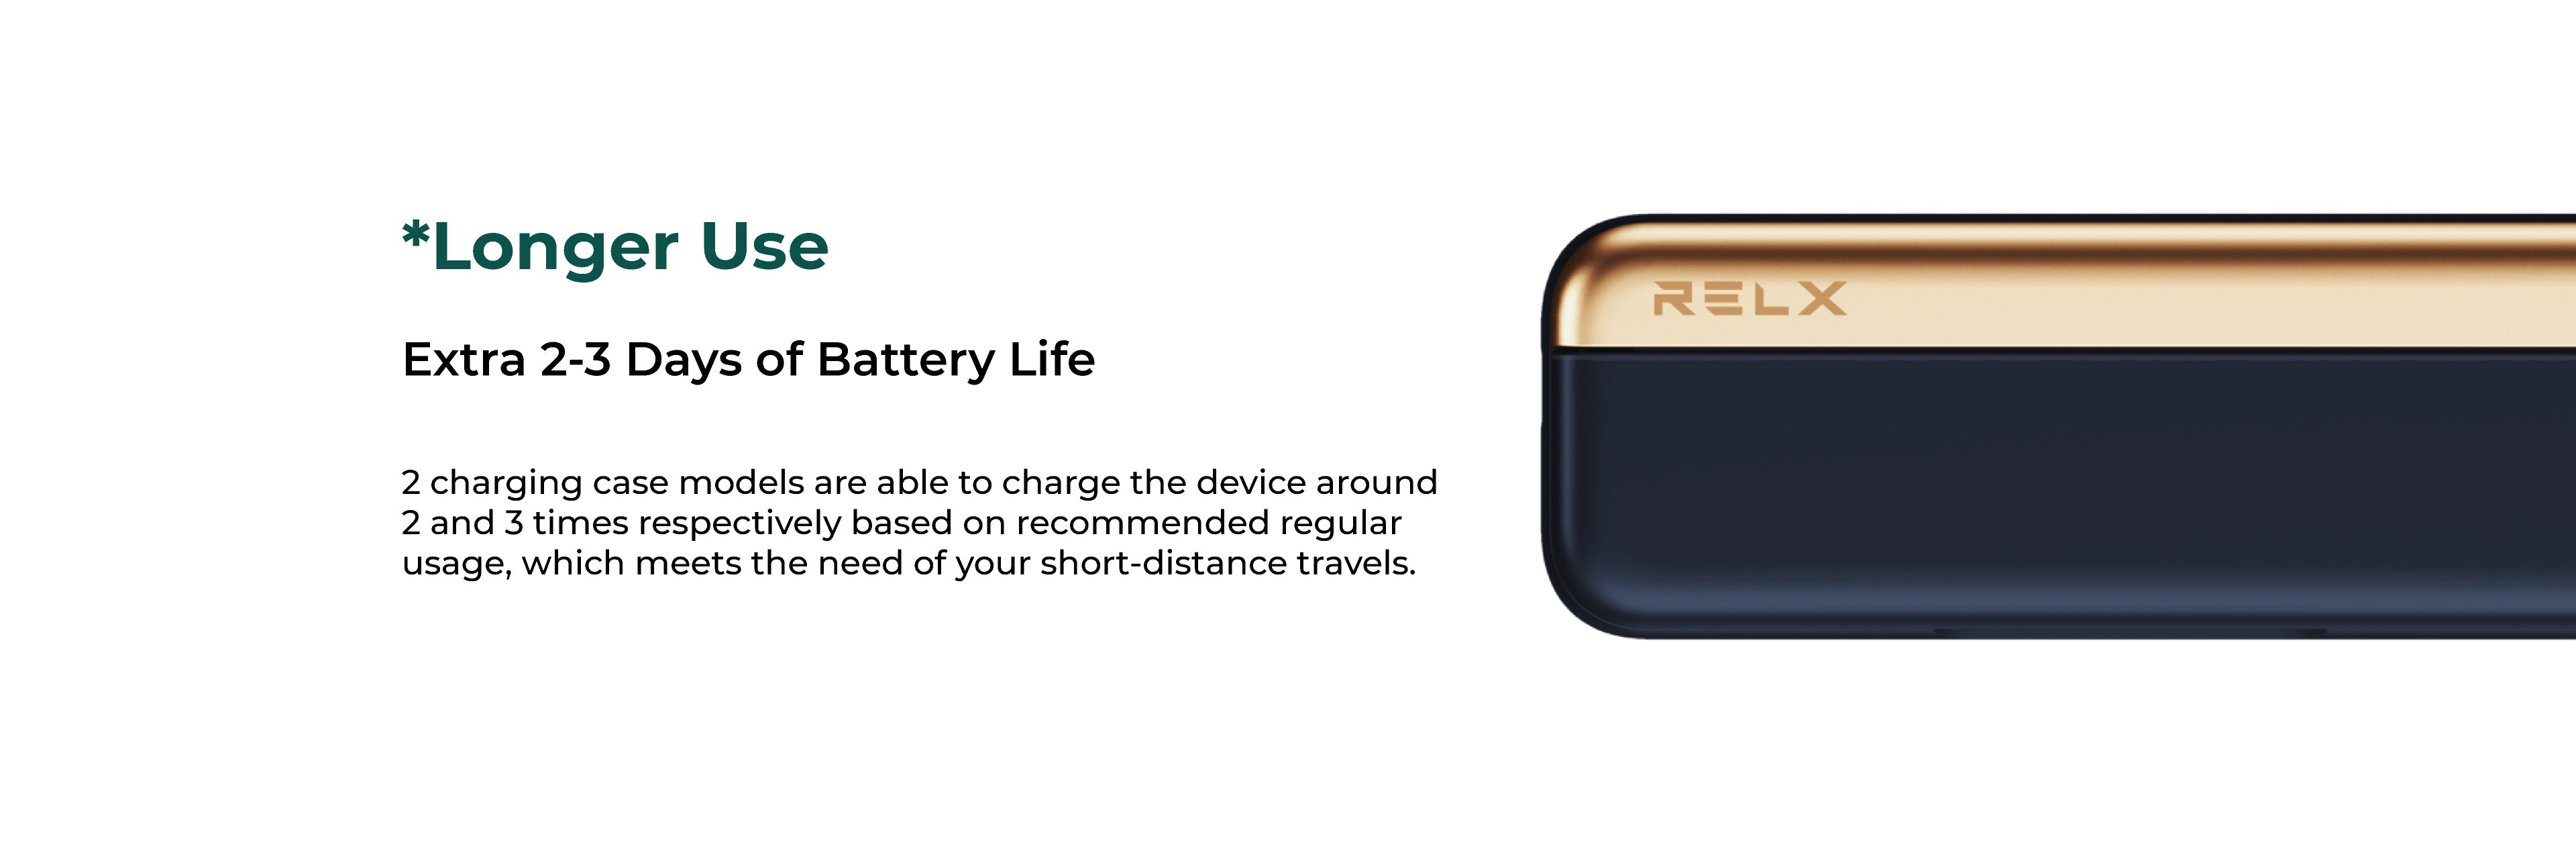 Extra 2-3 Days of Battery Life